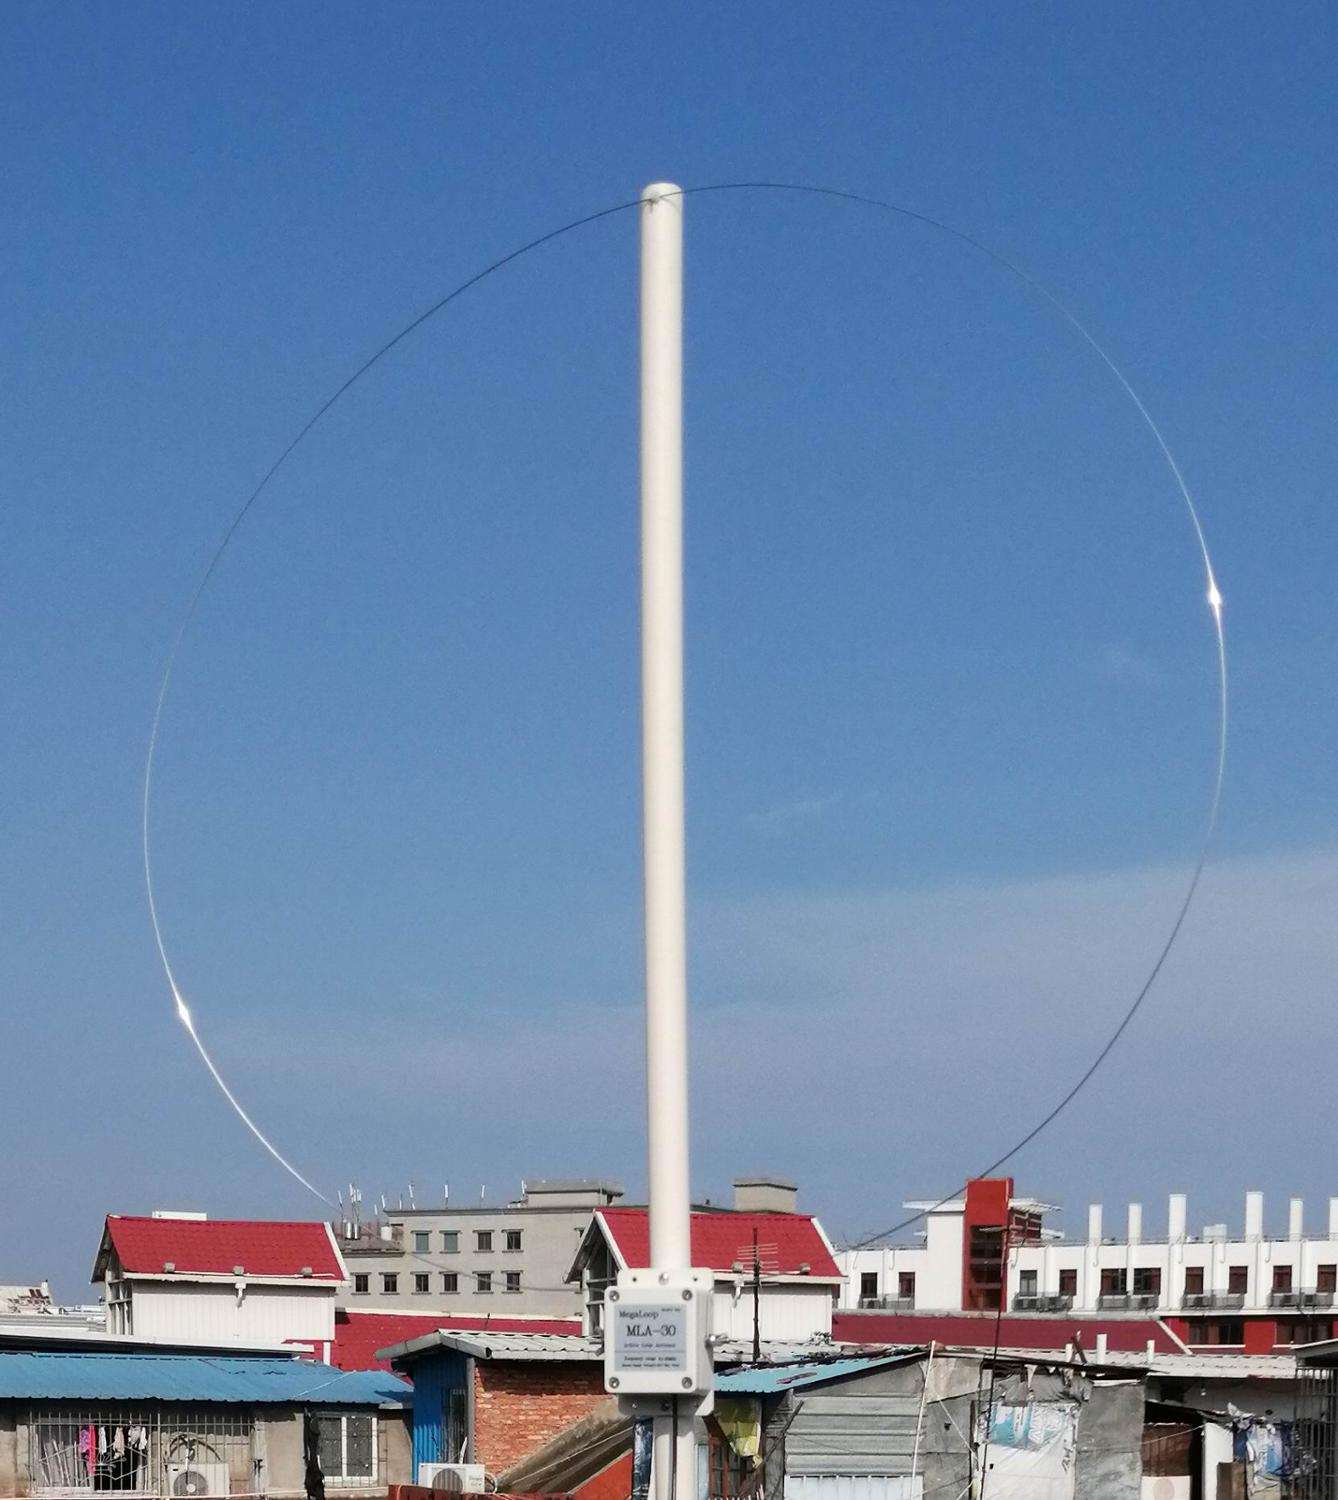 Latest Version MLA-30 Loop Antenna Active Receiving Antenna 100kHz - 30MHz For Shortwave Radio